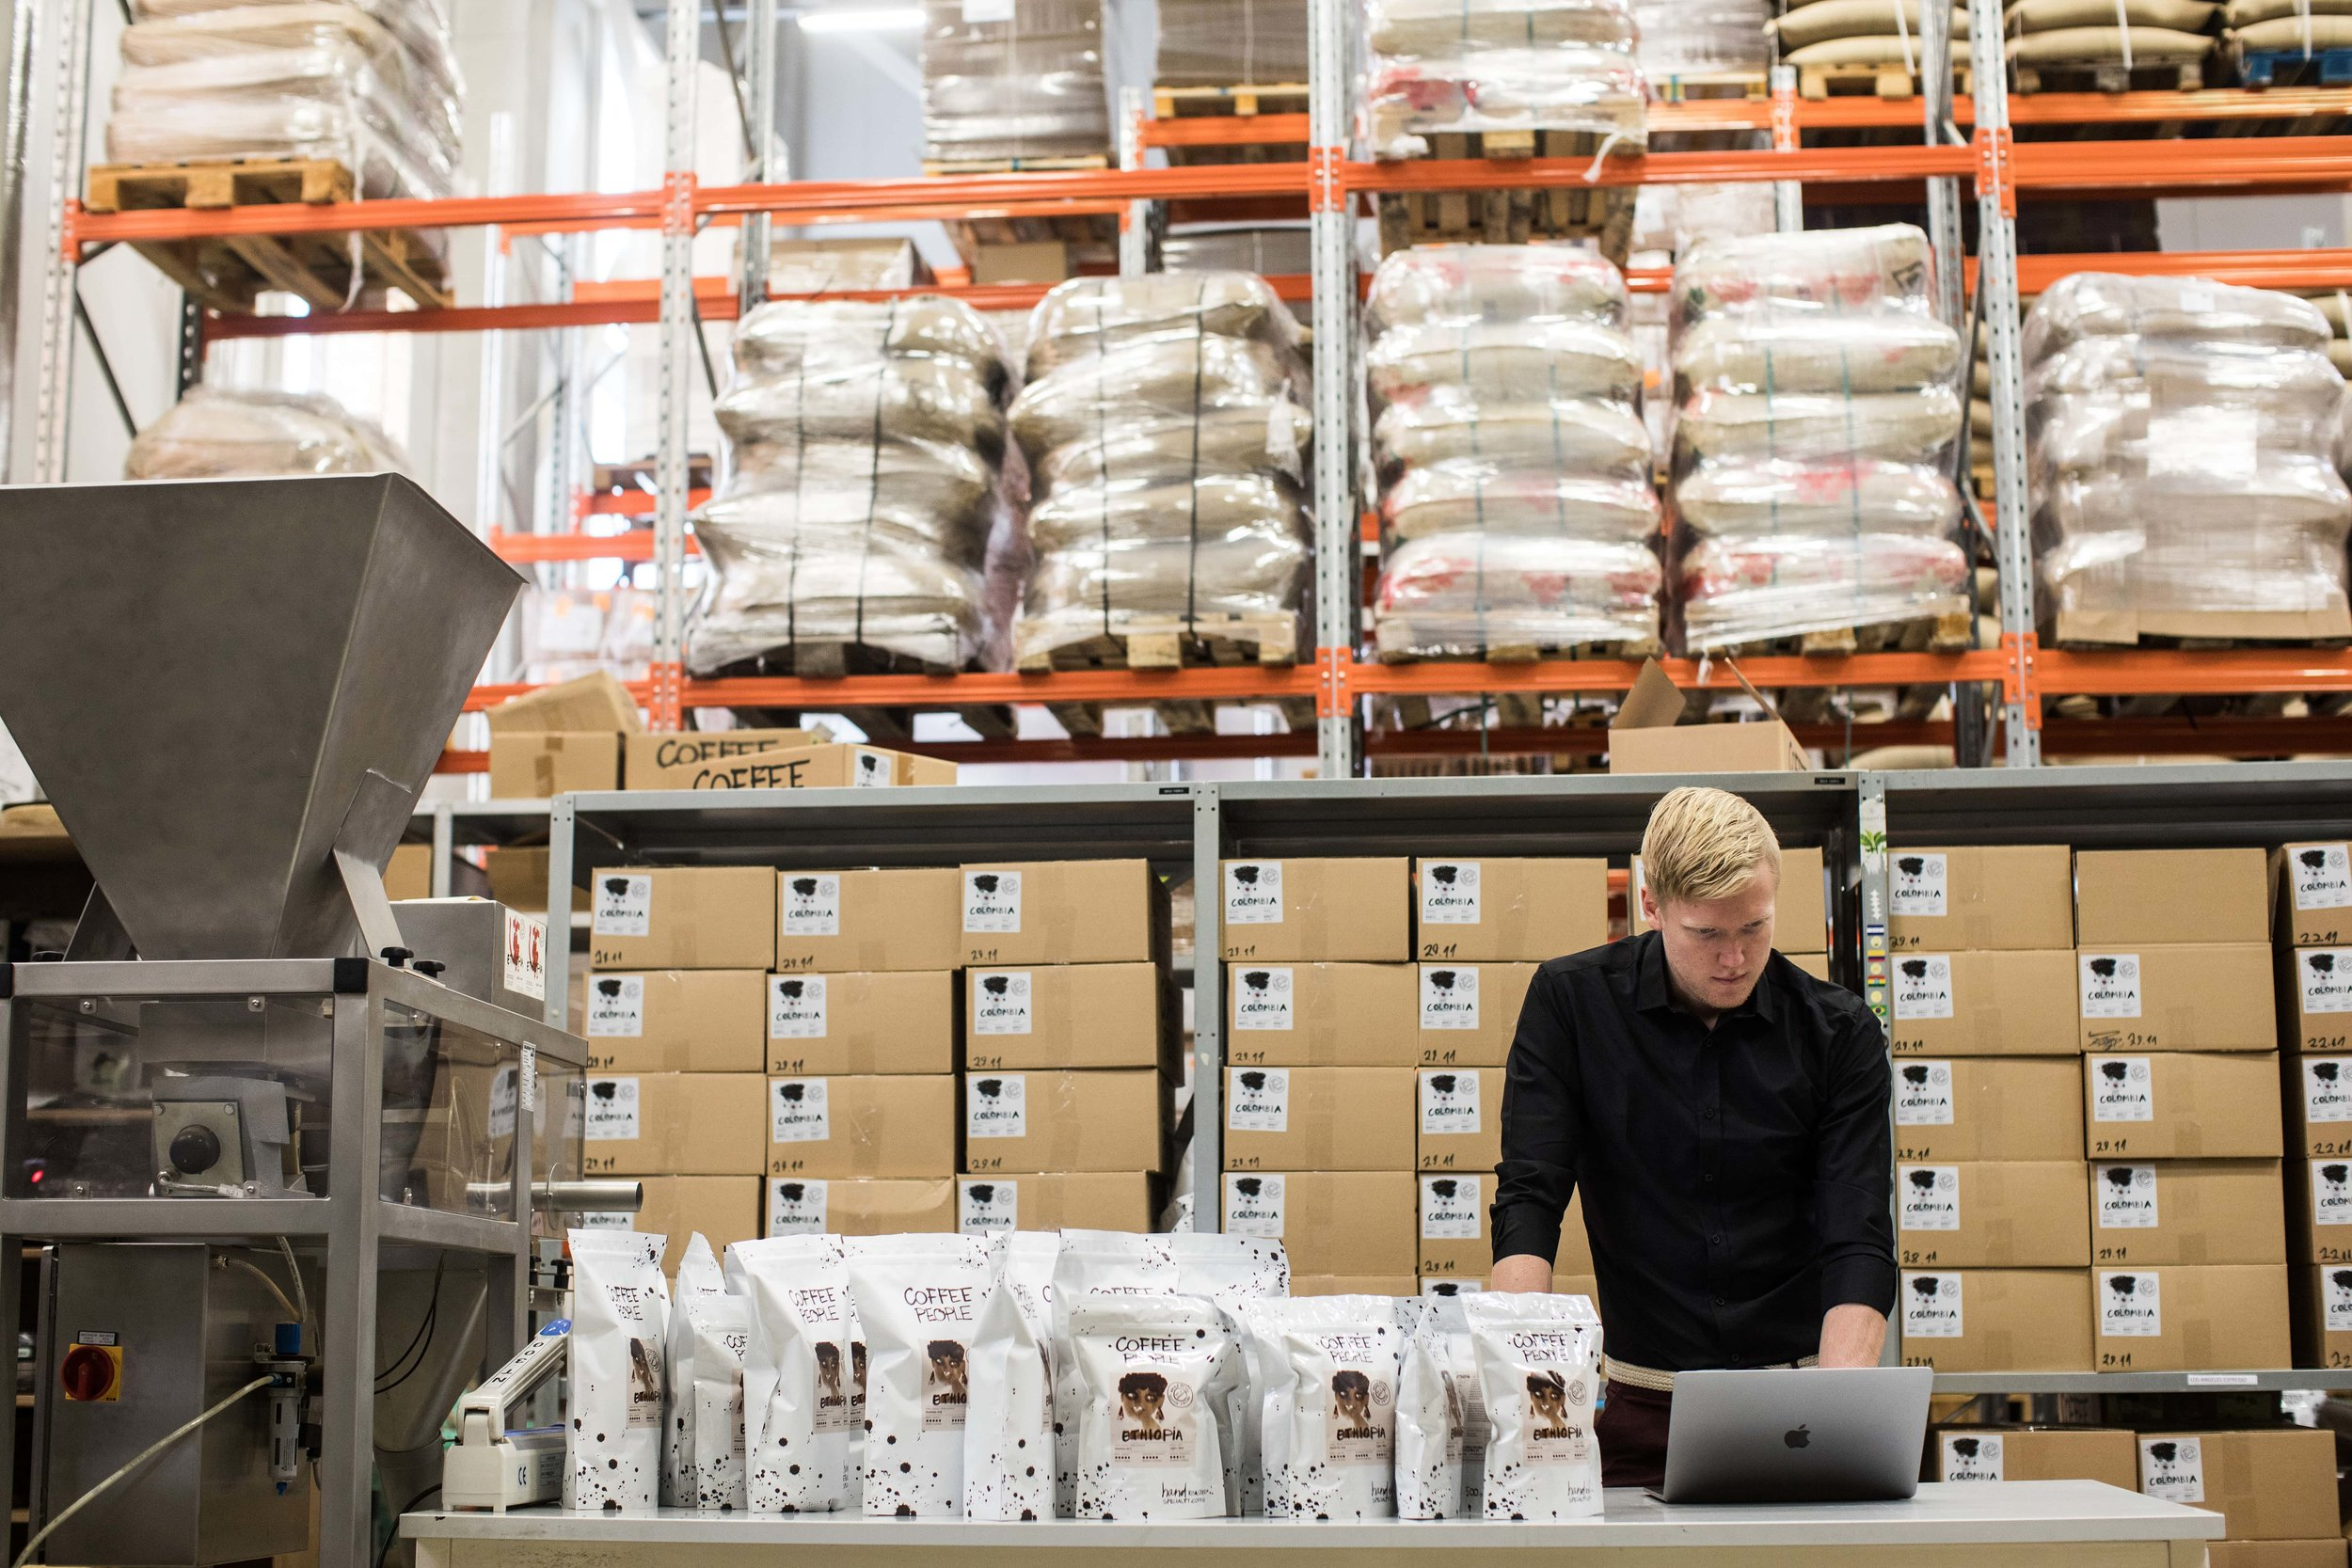 Scaling businesses like the guys at Coffee People use a simple inventory system for small business to make sure their deliveries get out on time. That way they can keep their heads clear and their customers happy.